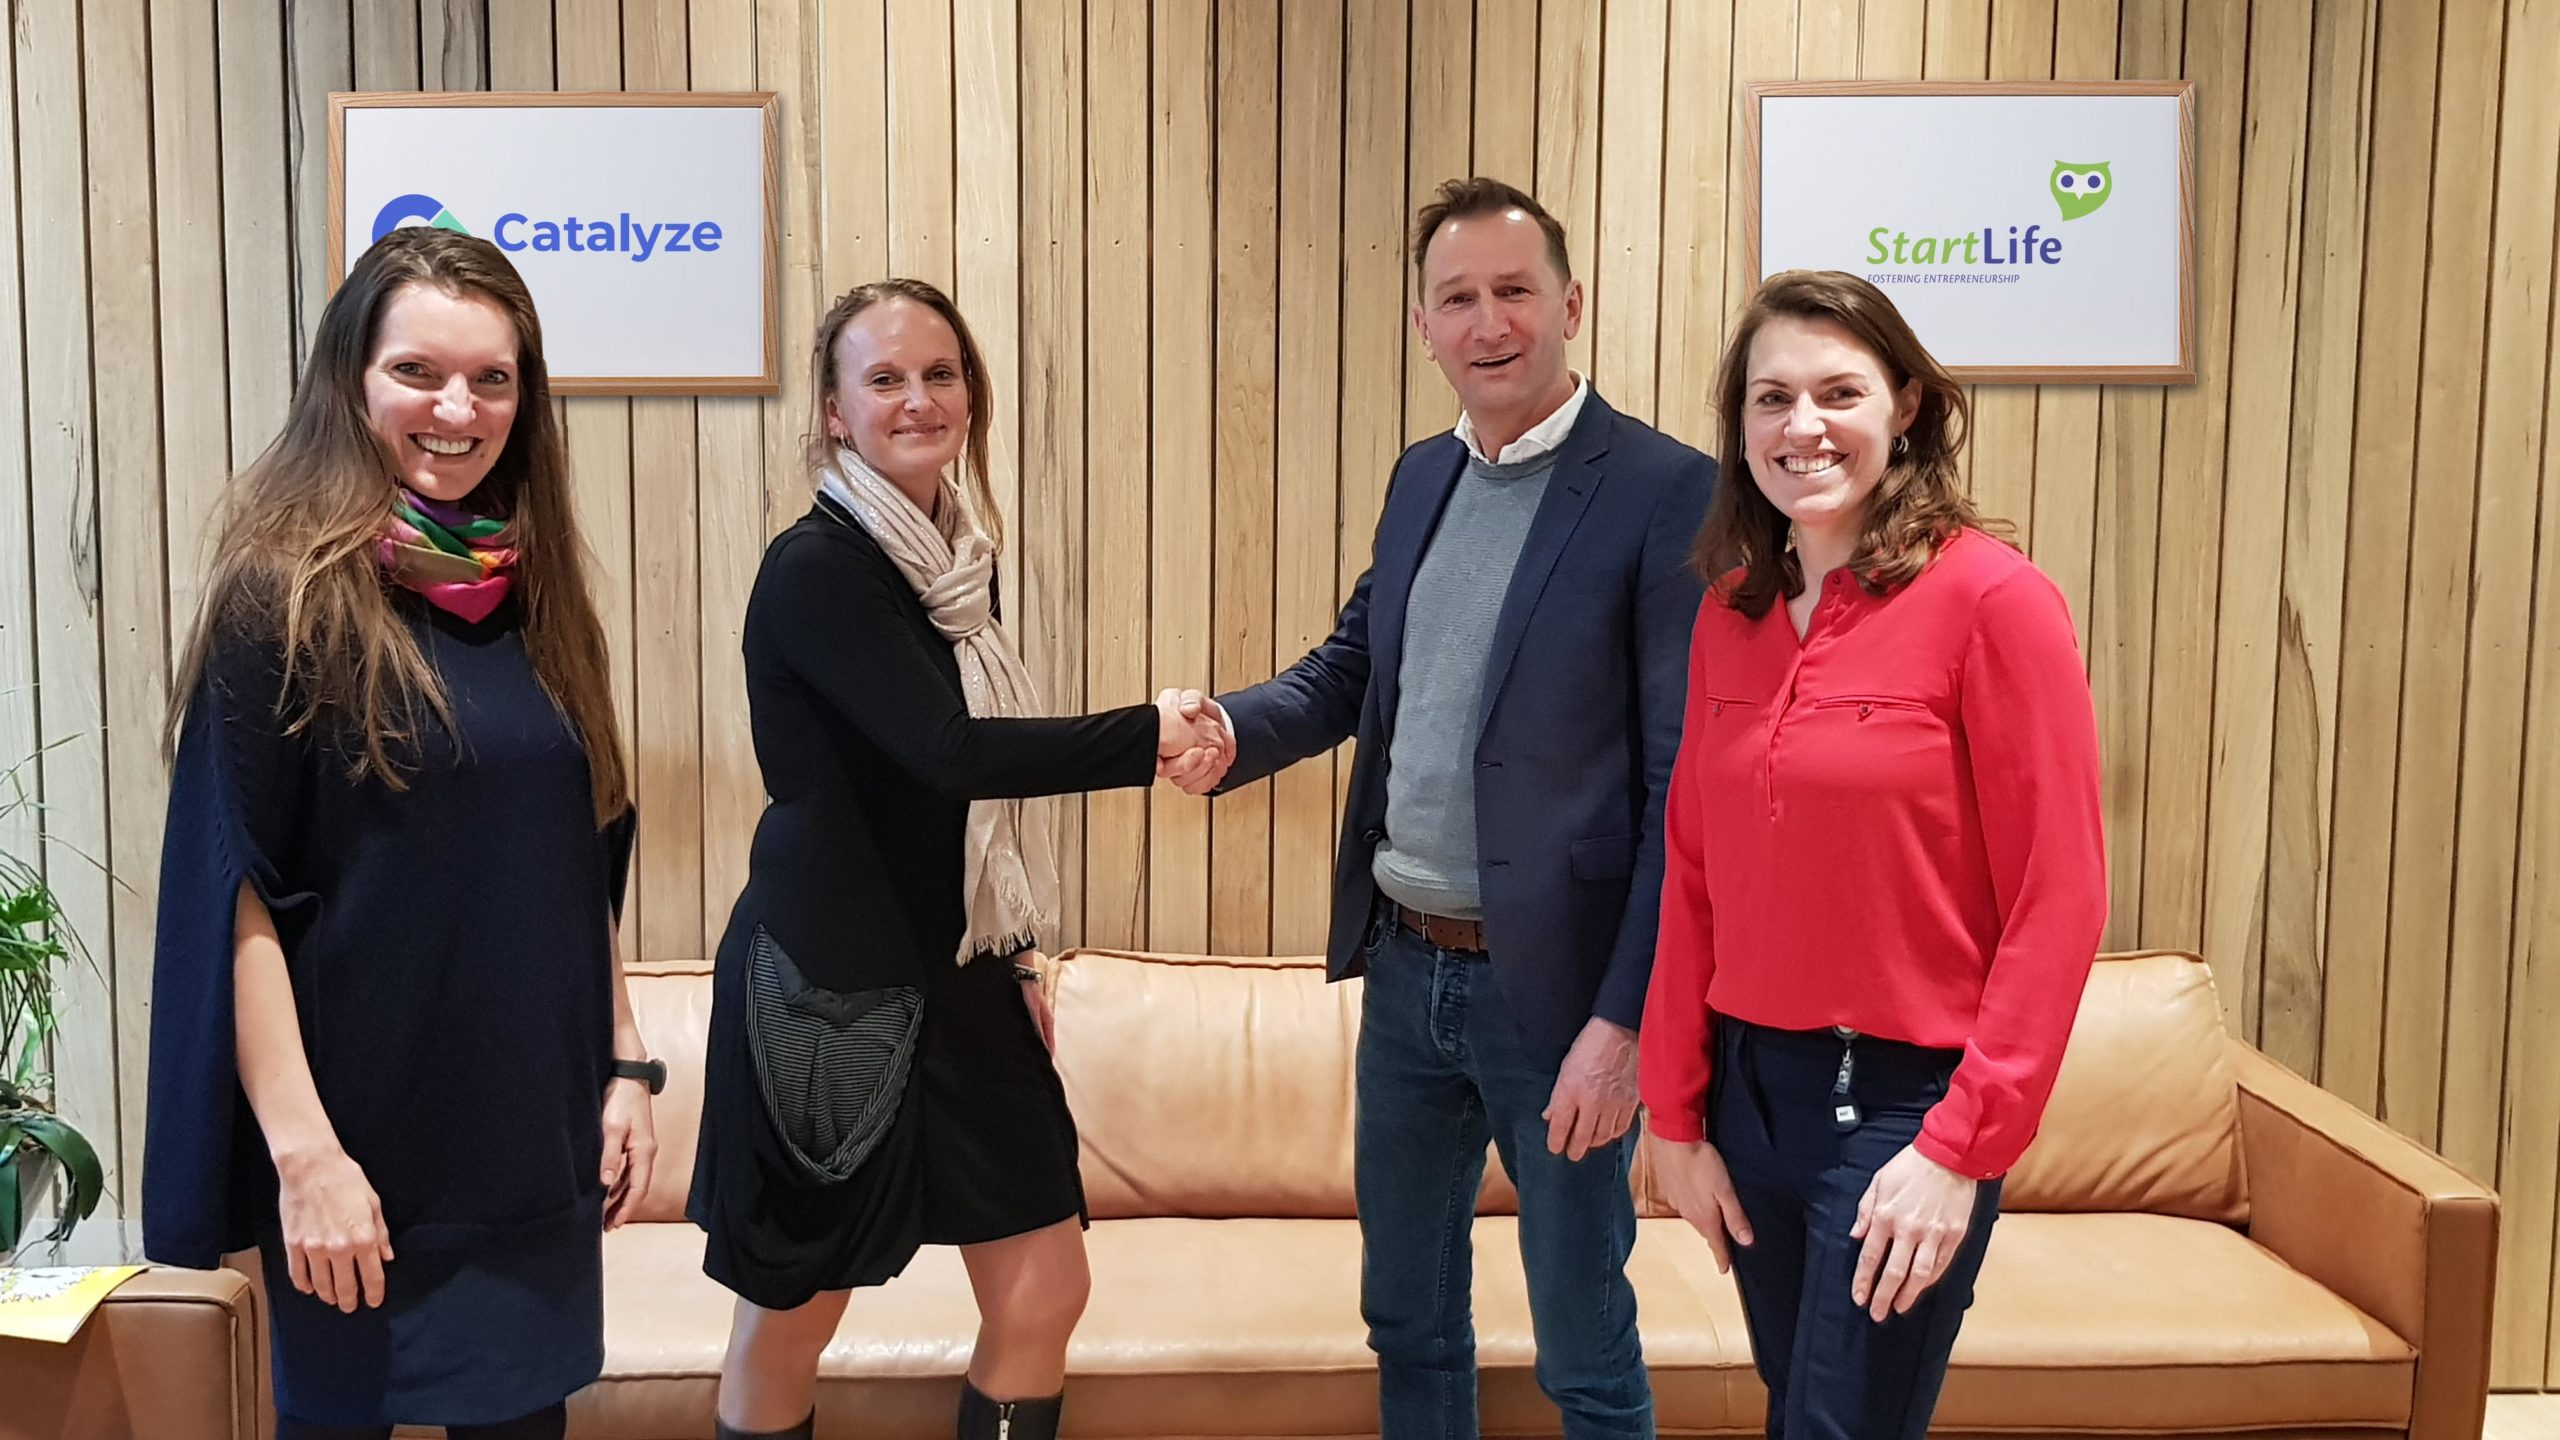 Neeltje Ramnaths of Catalyze and Jan Meiling of StartLife shake hands after signing strategic partnership